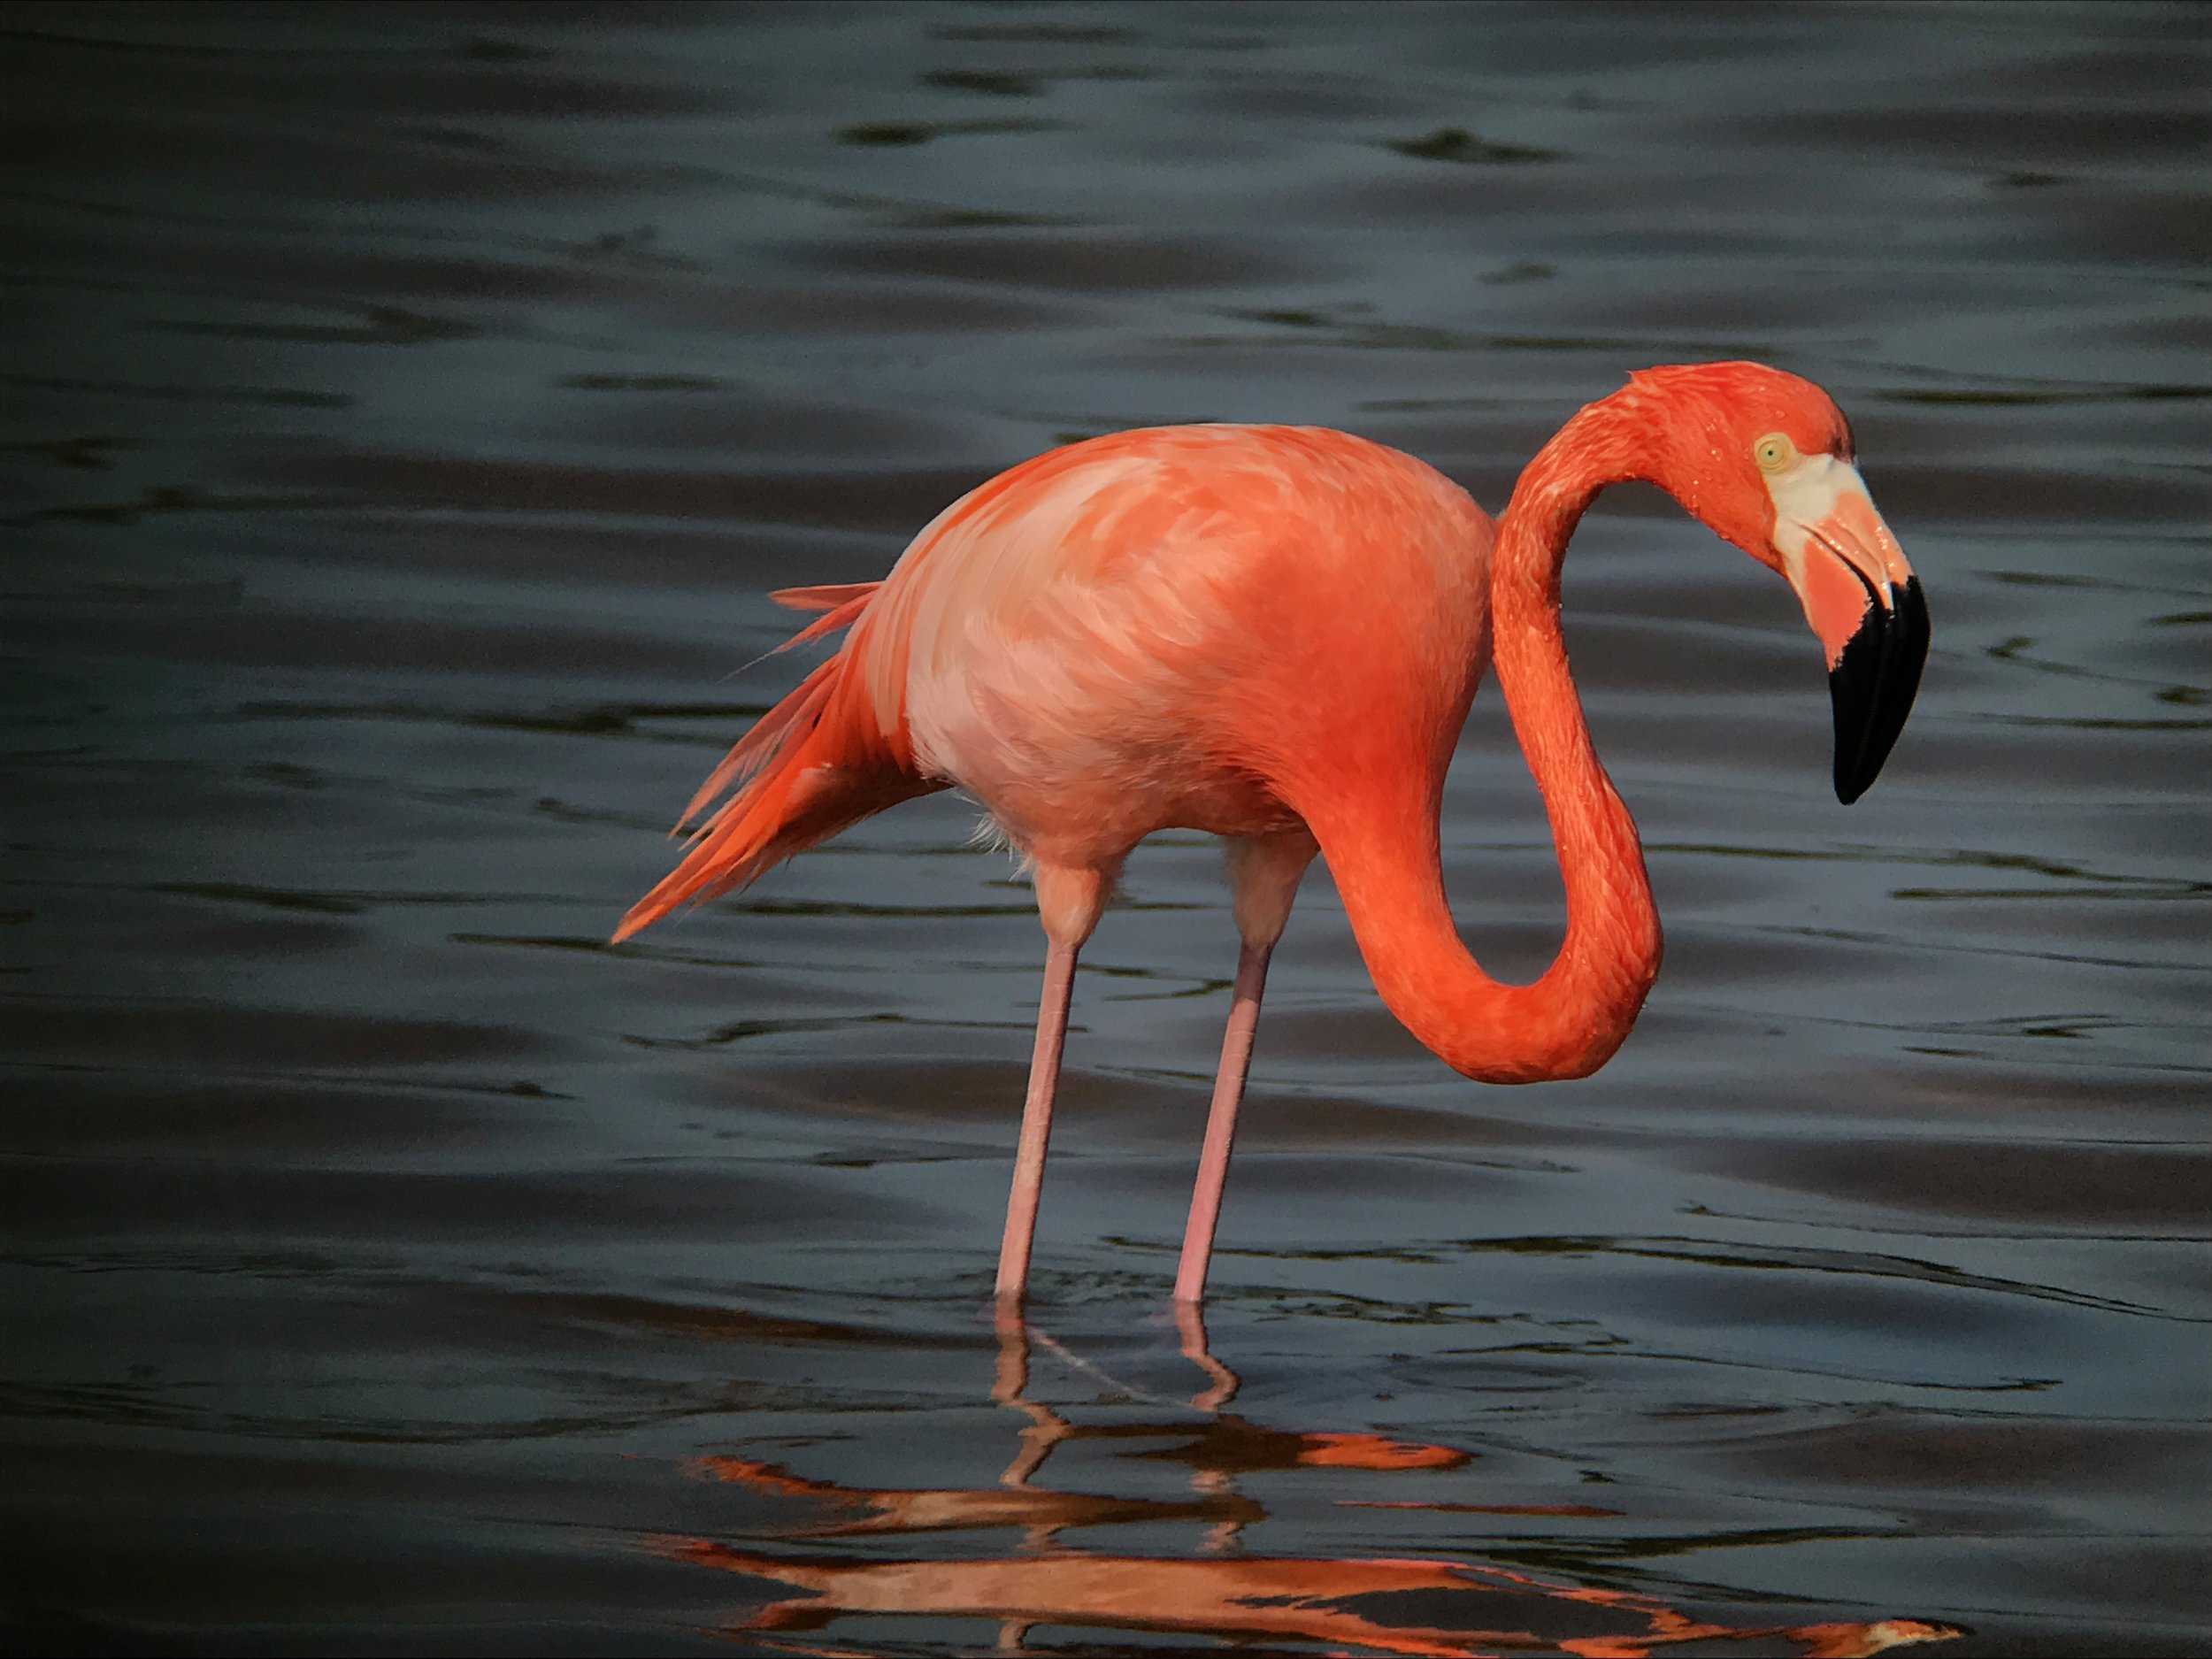 While taking pictures of feeding American Flamingos in Cayo Coco in Cuba, our guides told us they would be happy to make noise so the birds would fly off and we could get flight shots of the birds. We declined.